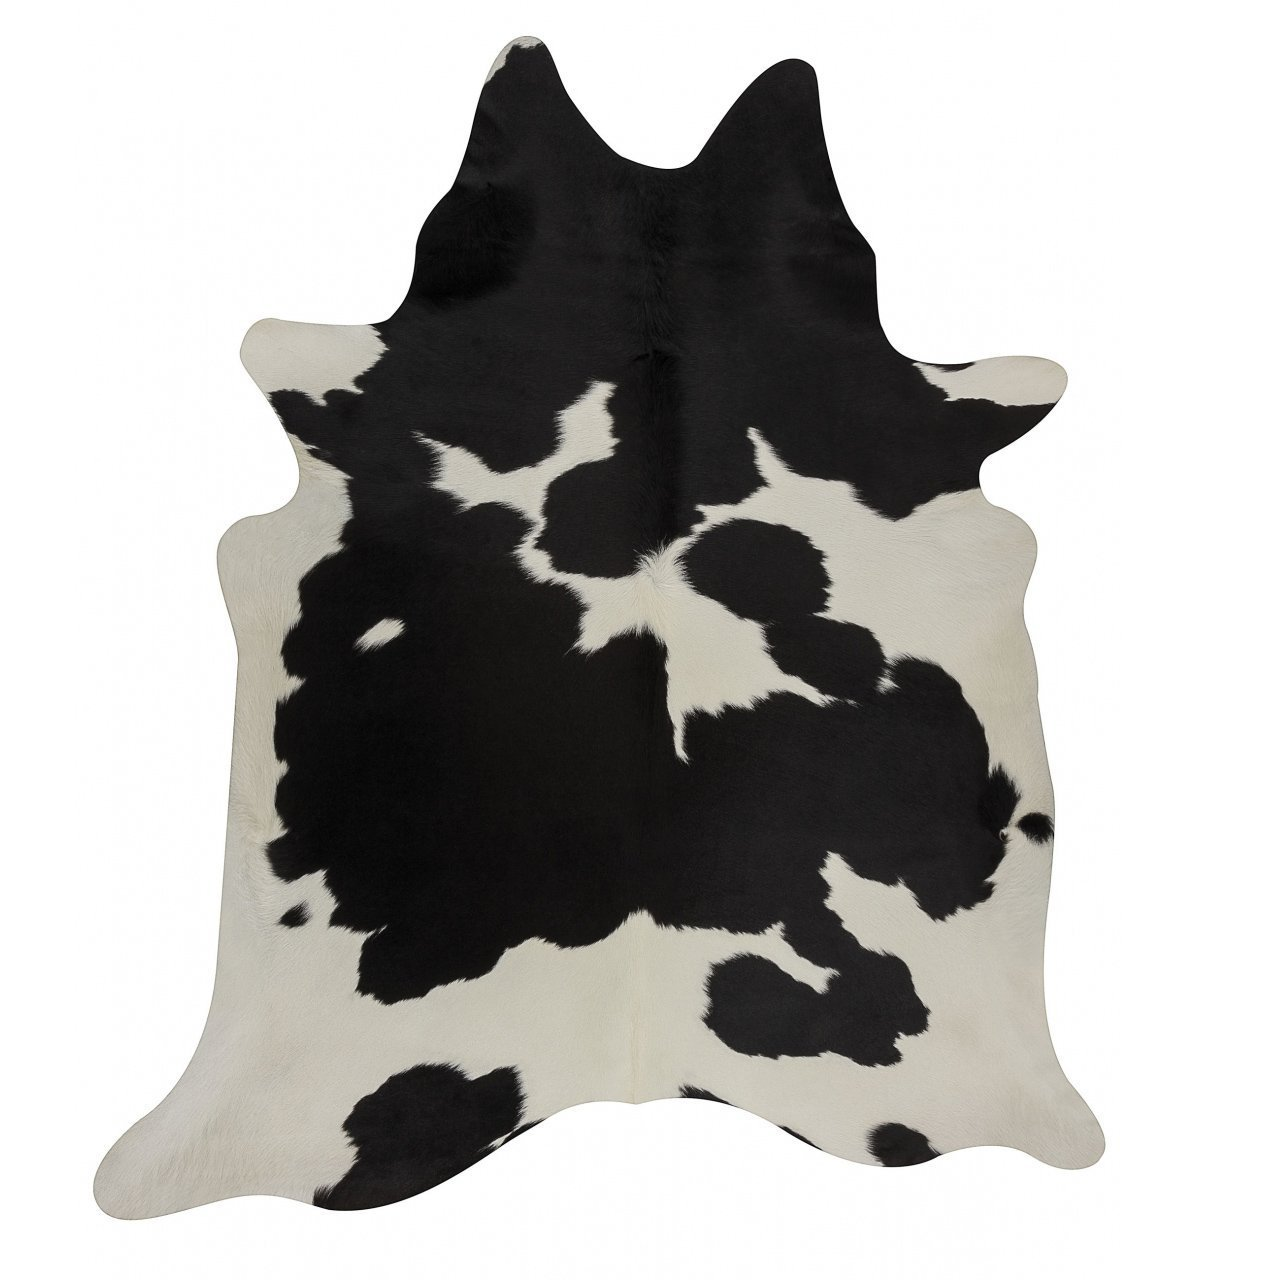 Black and White Cowhide Rug Black Cow Skin Leather Rug - Pure Cowhide Rug (5 X 7) by MeshNew